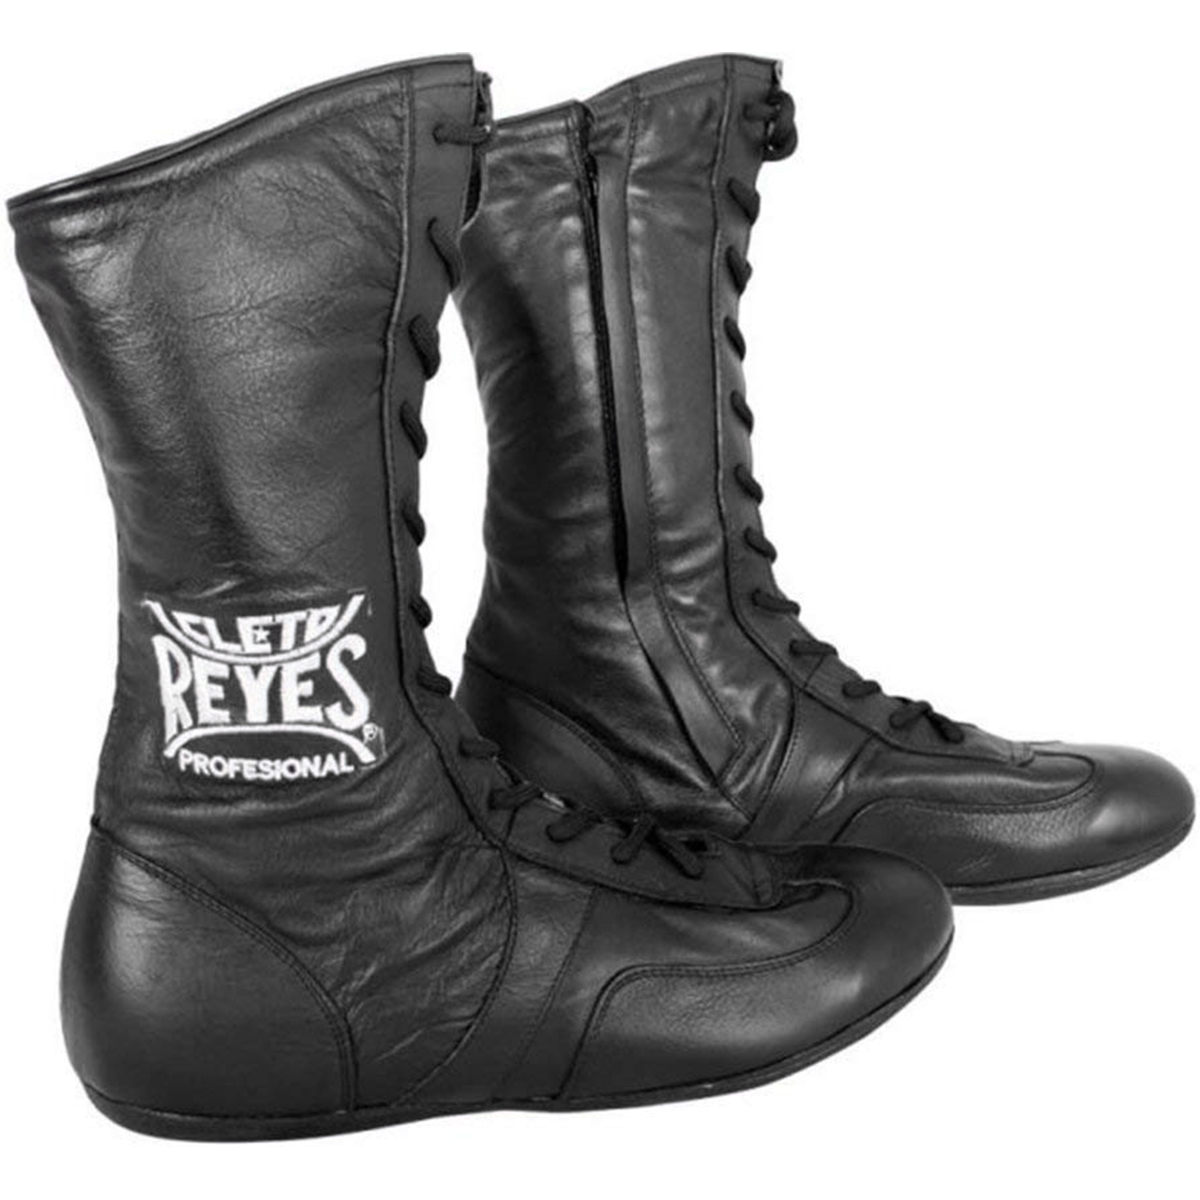 Black Cleto Reyes Leather Lace Up High Top Boxing Shoes